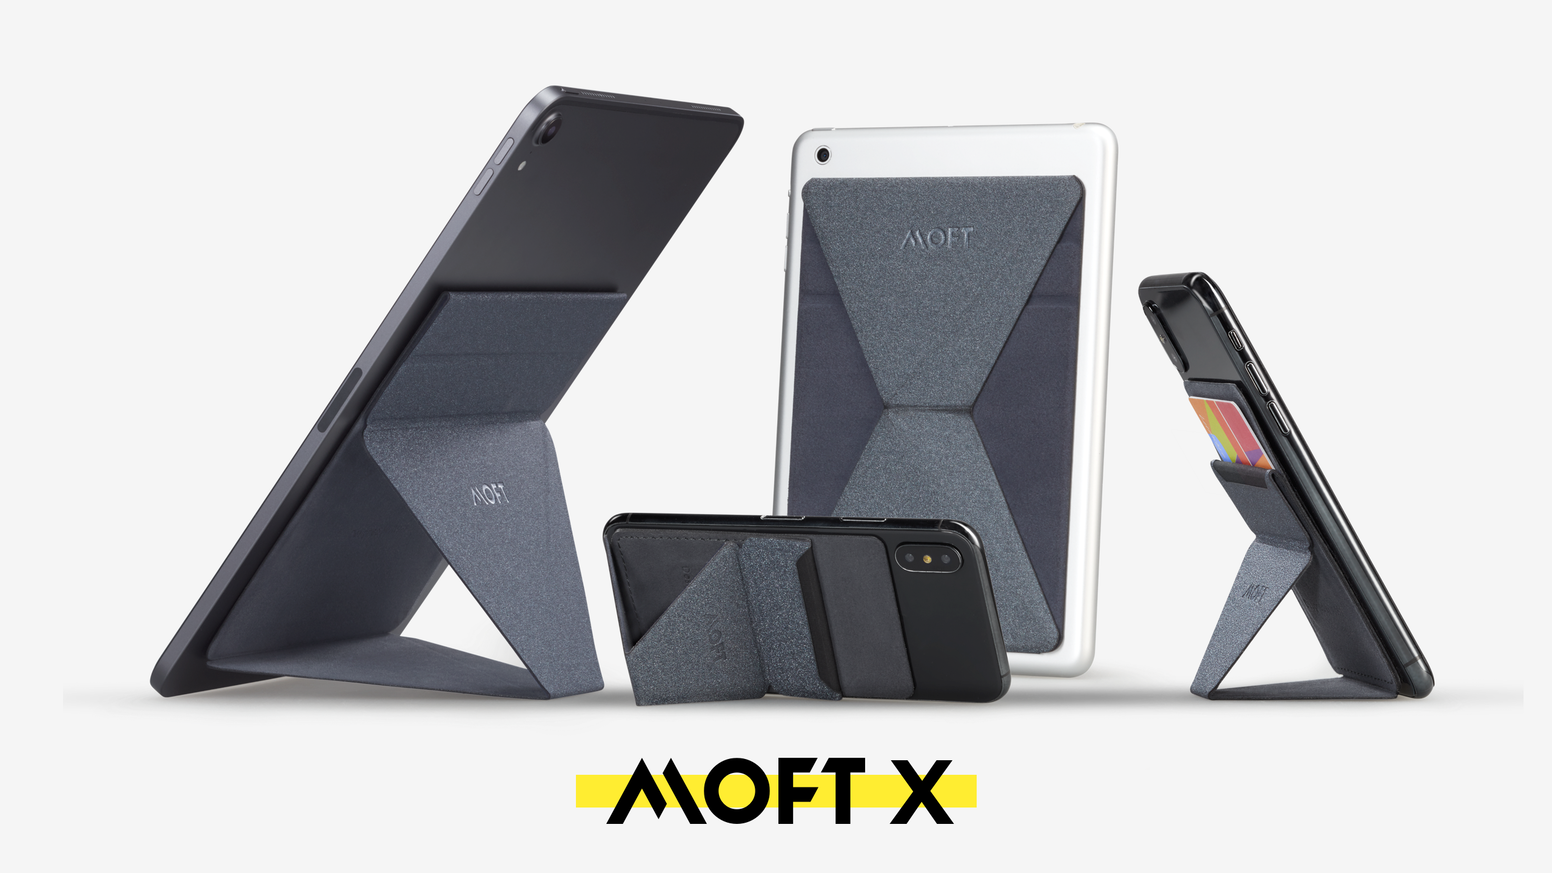 MOFT X Black - [AU Stock] Invisible and Foldaway Mobile Stand | Ultra-Light Phone Wallet, Car Phone Holder